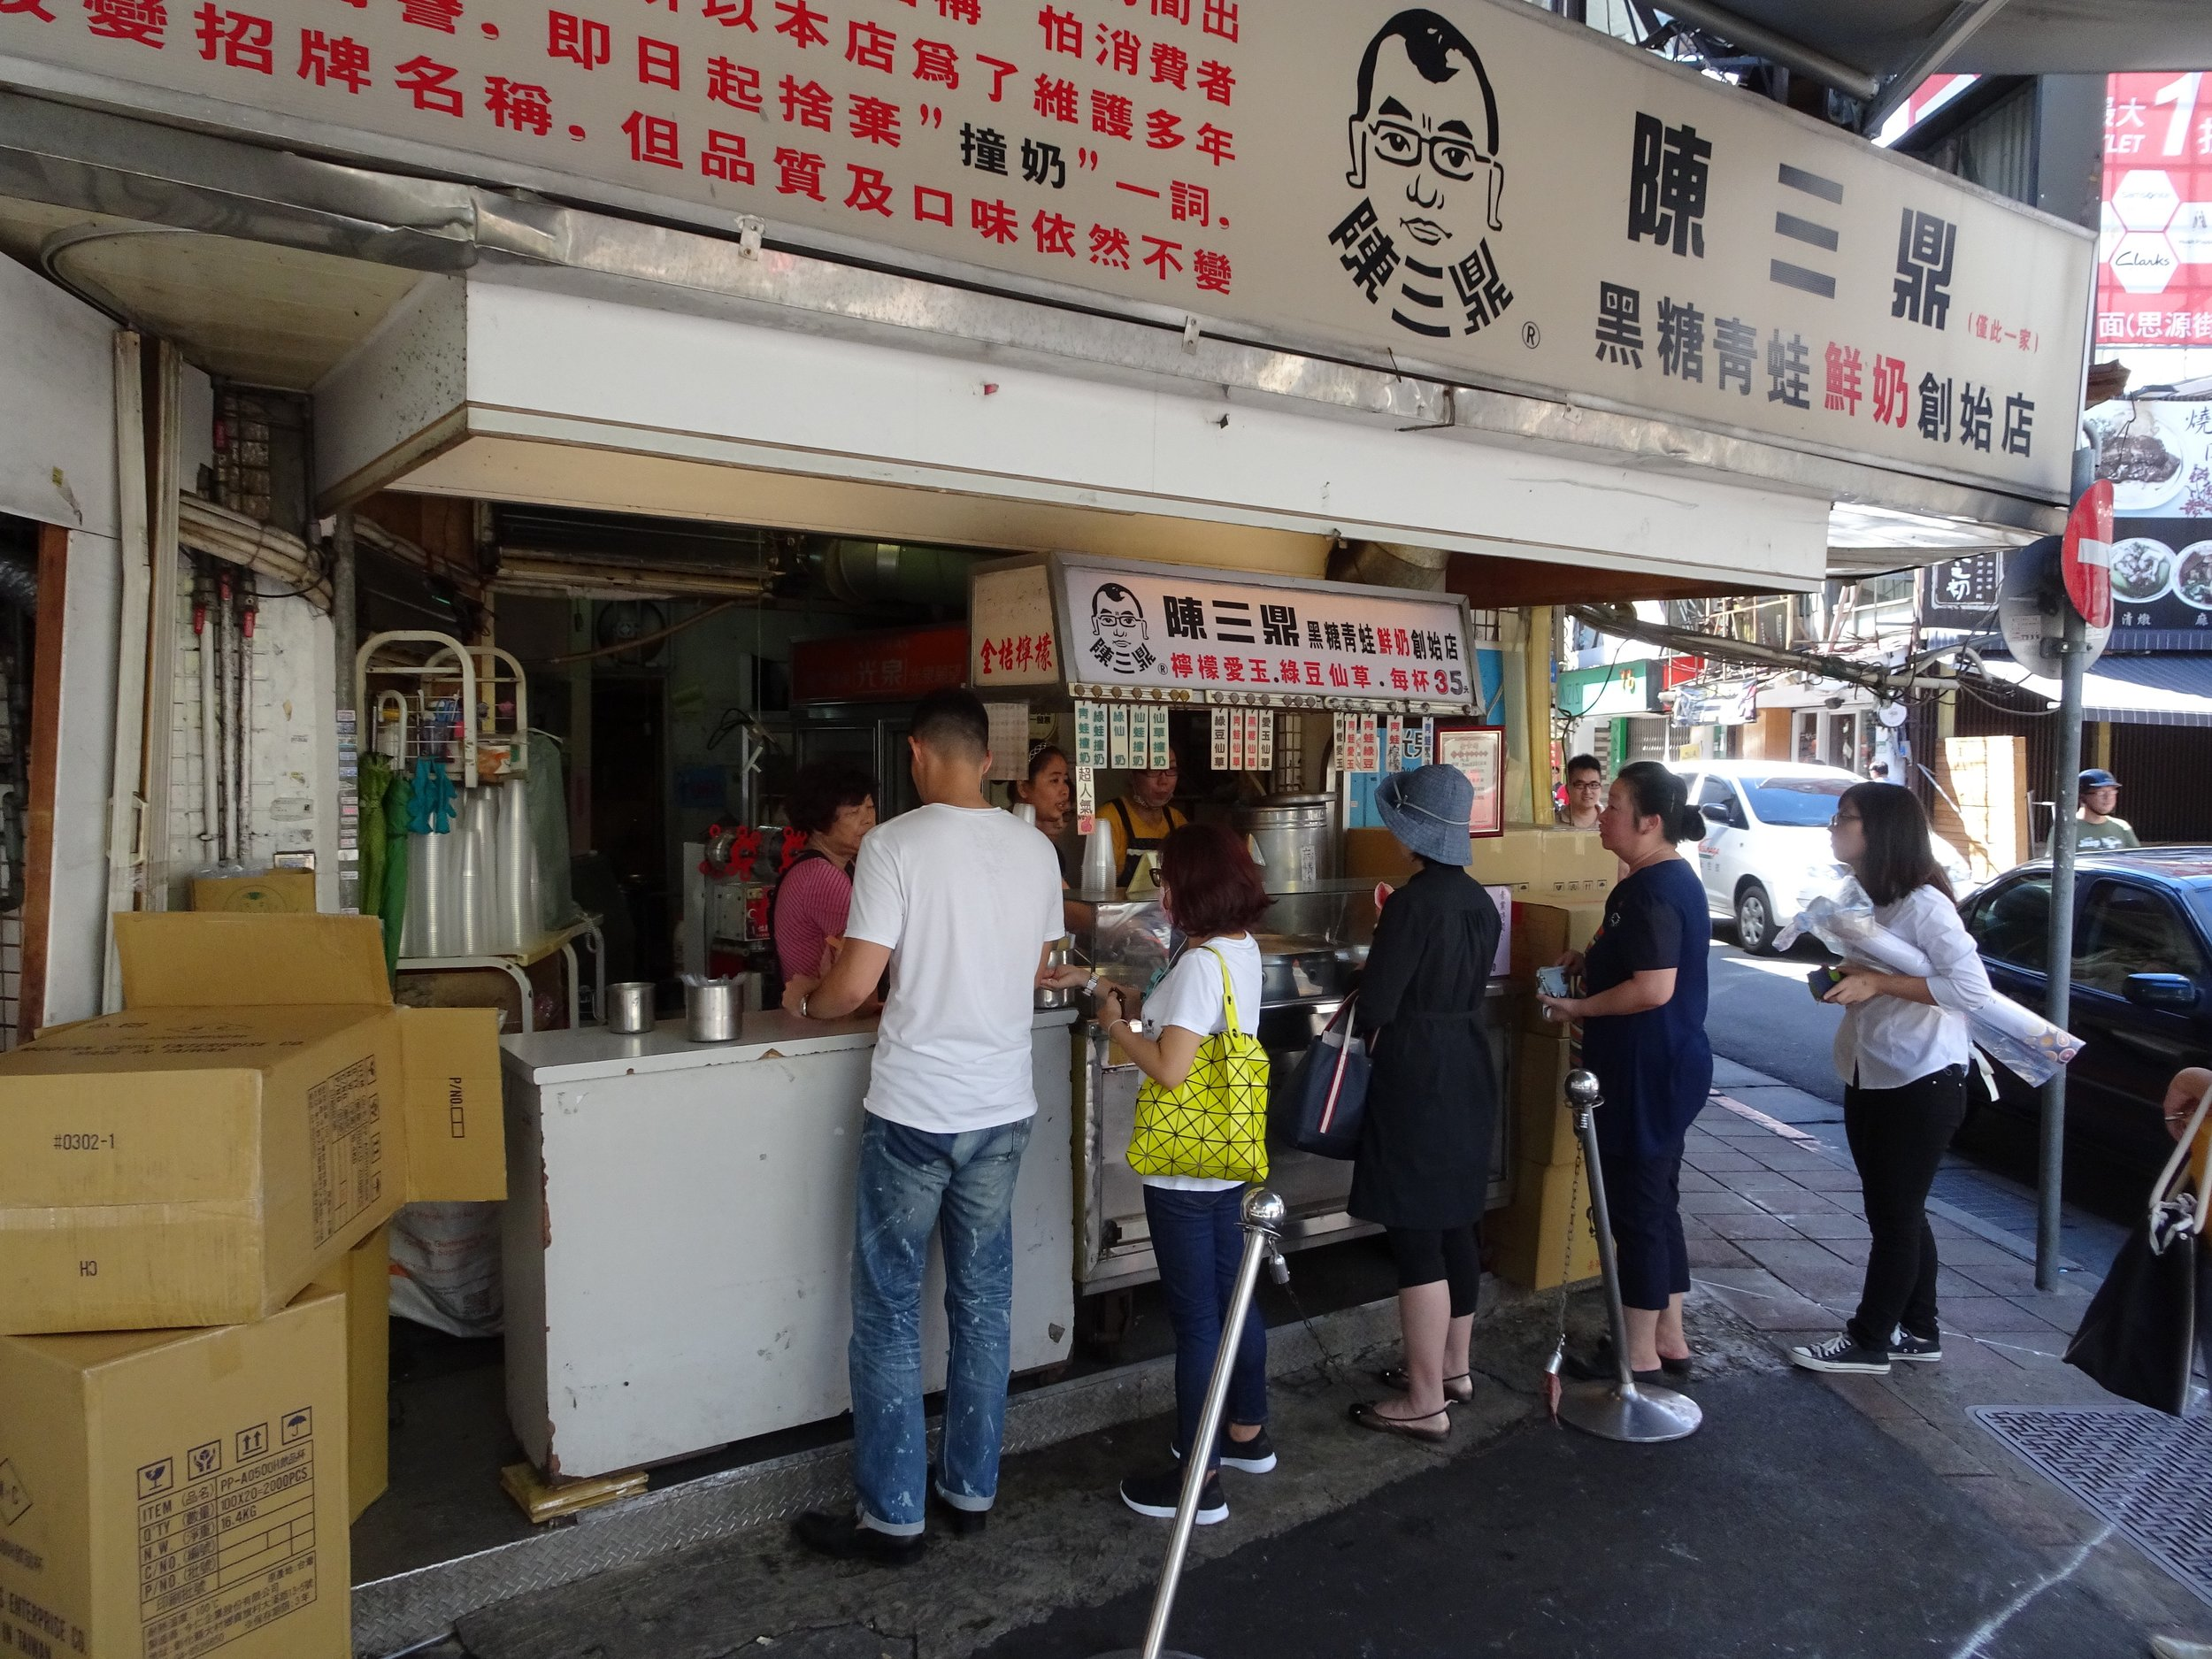 drink stand in TAIPEI, TAIWAN - M.QUGLEY